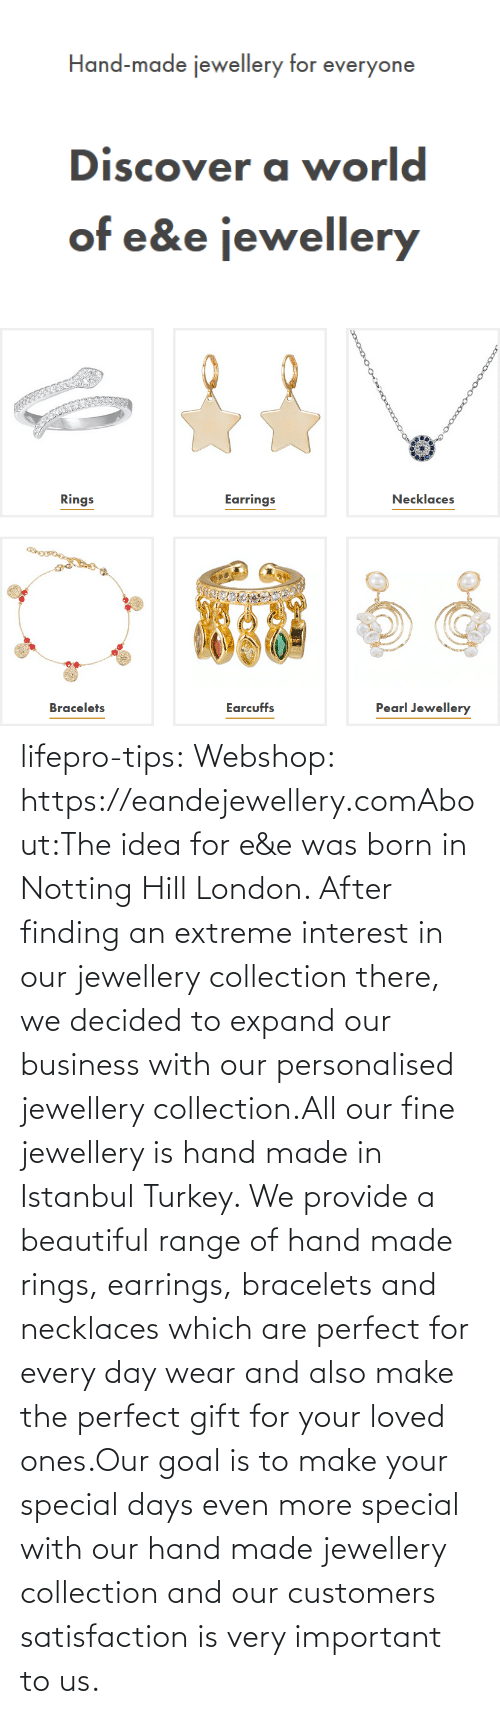 extreme: lifepro-tips: Webshop: https://eandejewellery.comAbout:The idea for e&e was born in Notting Hill London. After  finding an extreme interest in our jewellery collection there, we  decided to expand our business with our personalised jewellery  collection.All our fine jewellery is hand made in Istanbul Turkey. We  provide a beautiful range of hand made rings, earrings, bracelets and  necklaces which are perfect for every day wear and also make the perfect  gift for your loved ones.Our goal is to make your special days even more special with  our hand made jewellery collection and our customers satisfaction is  very important to us.